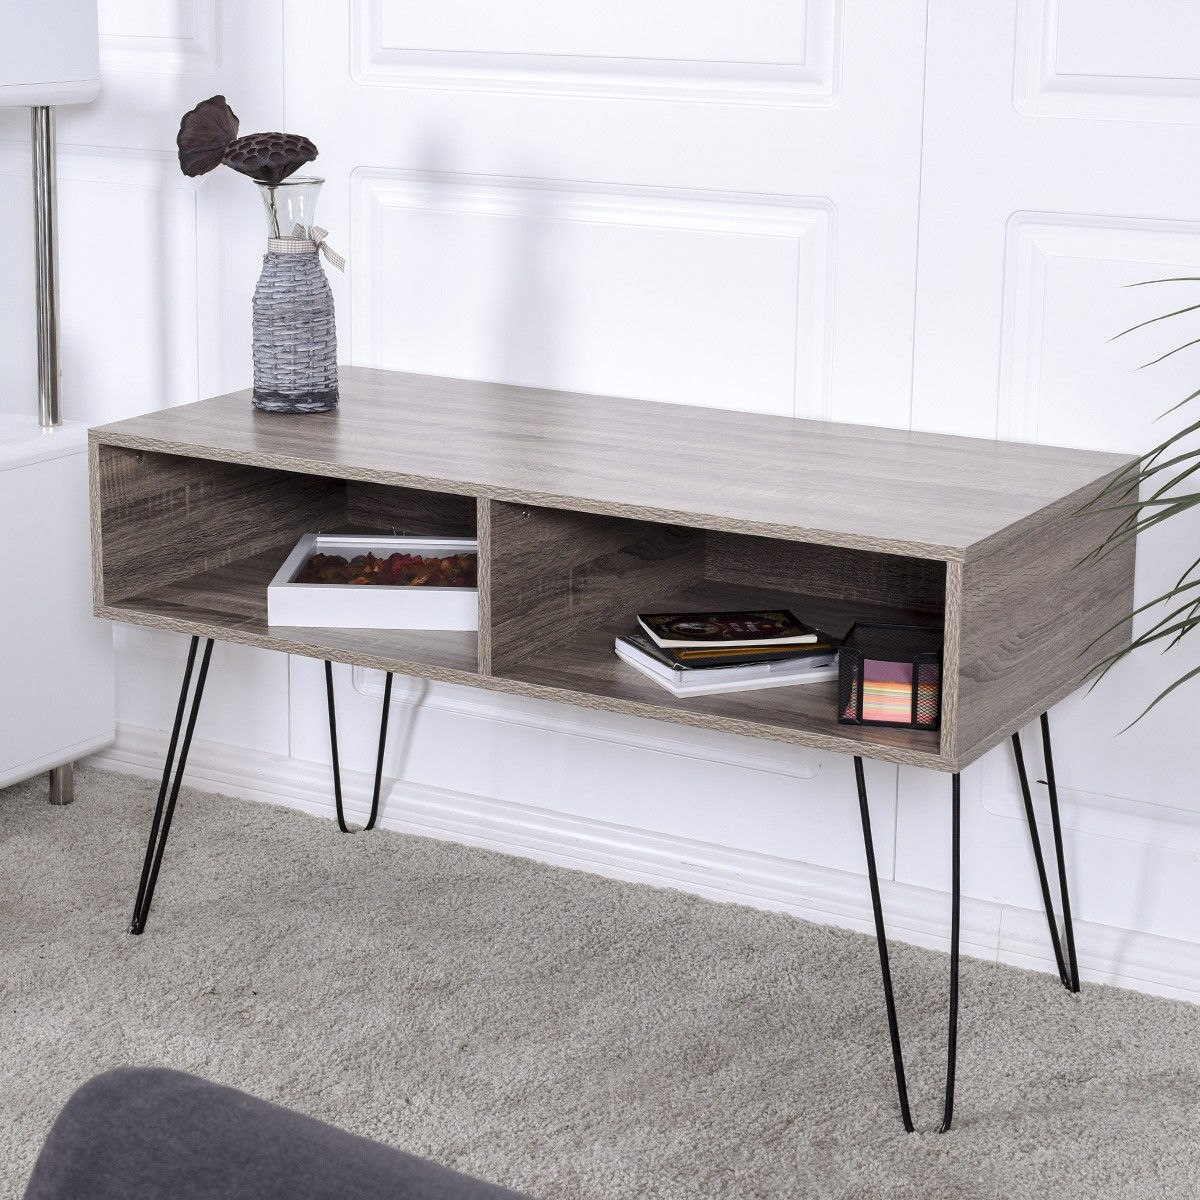 Giantex Modern Tv Stand Wood Media Console Table Entertainment With Metal Hairpin Legs Tvs Up To 42 Home Furniture Hw56640 In Living Room Cabinets From